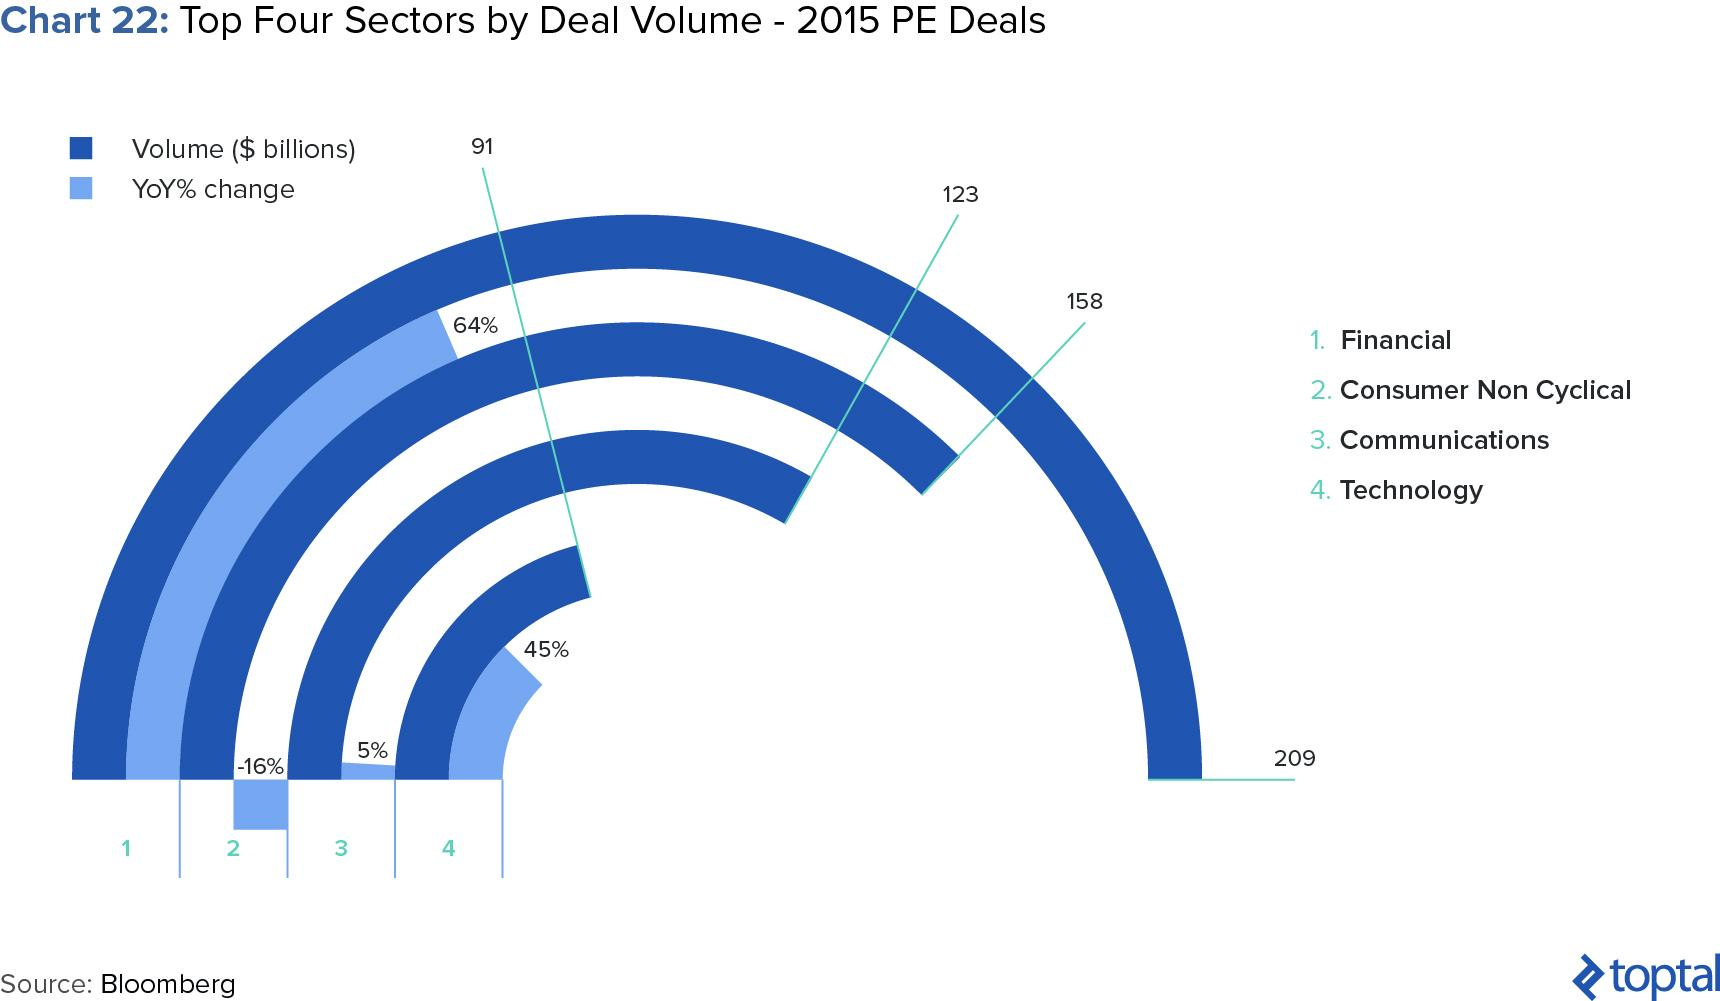 Chart 22: Top Four Sectors by Deal Volume - 2015 PE Deals